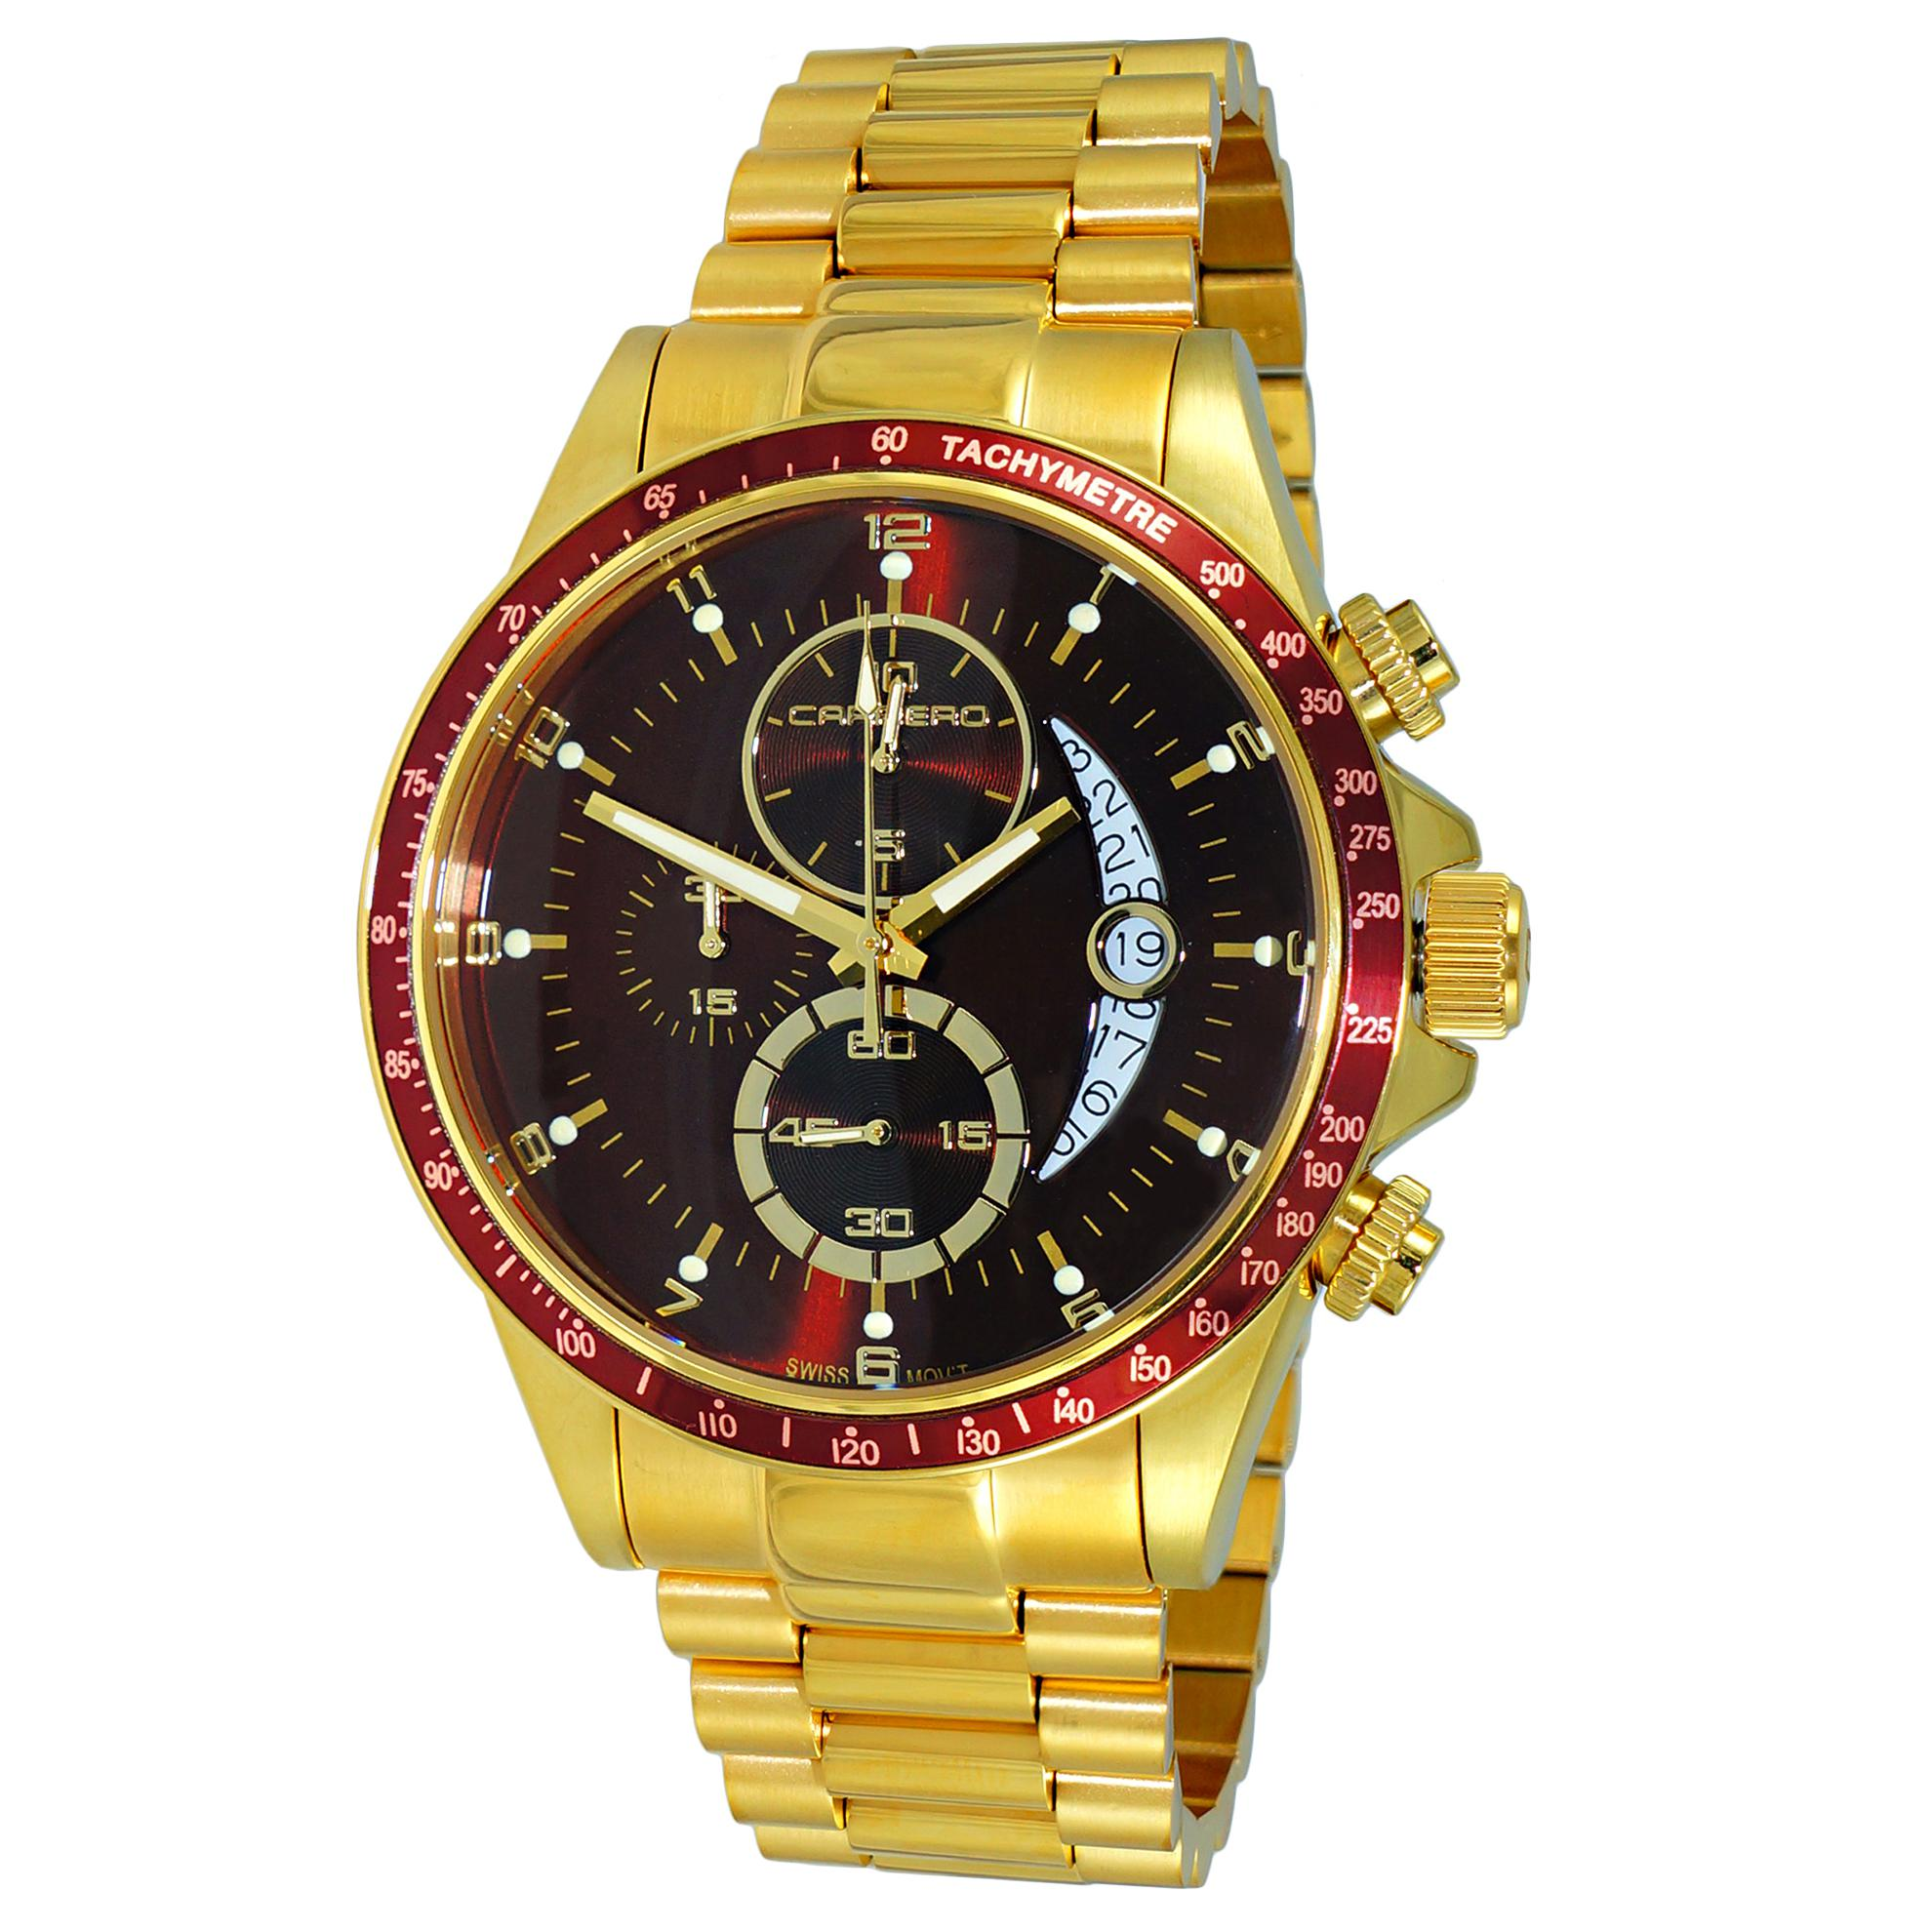 Carrero C1G111MR Carrero Catania R1 Limited Edition Swiss Chronograph All Gold Burgandy Dial